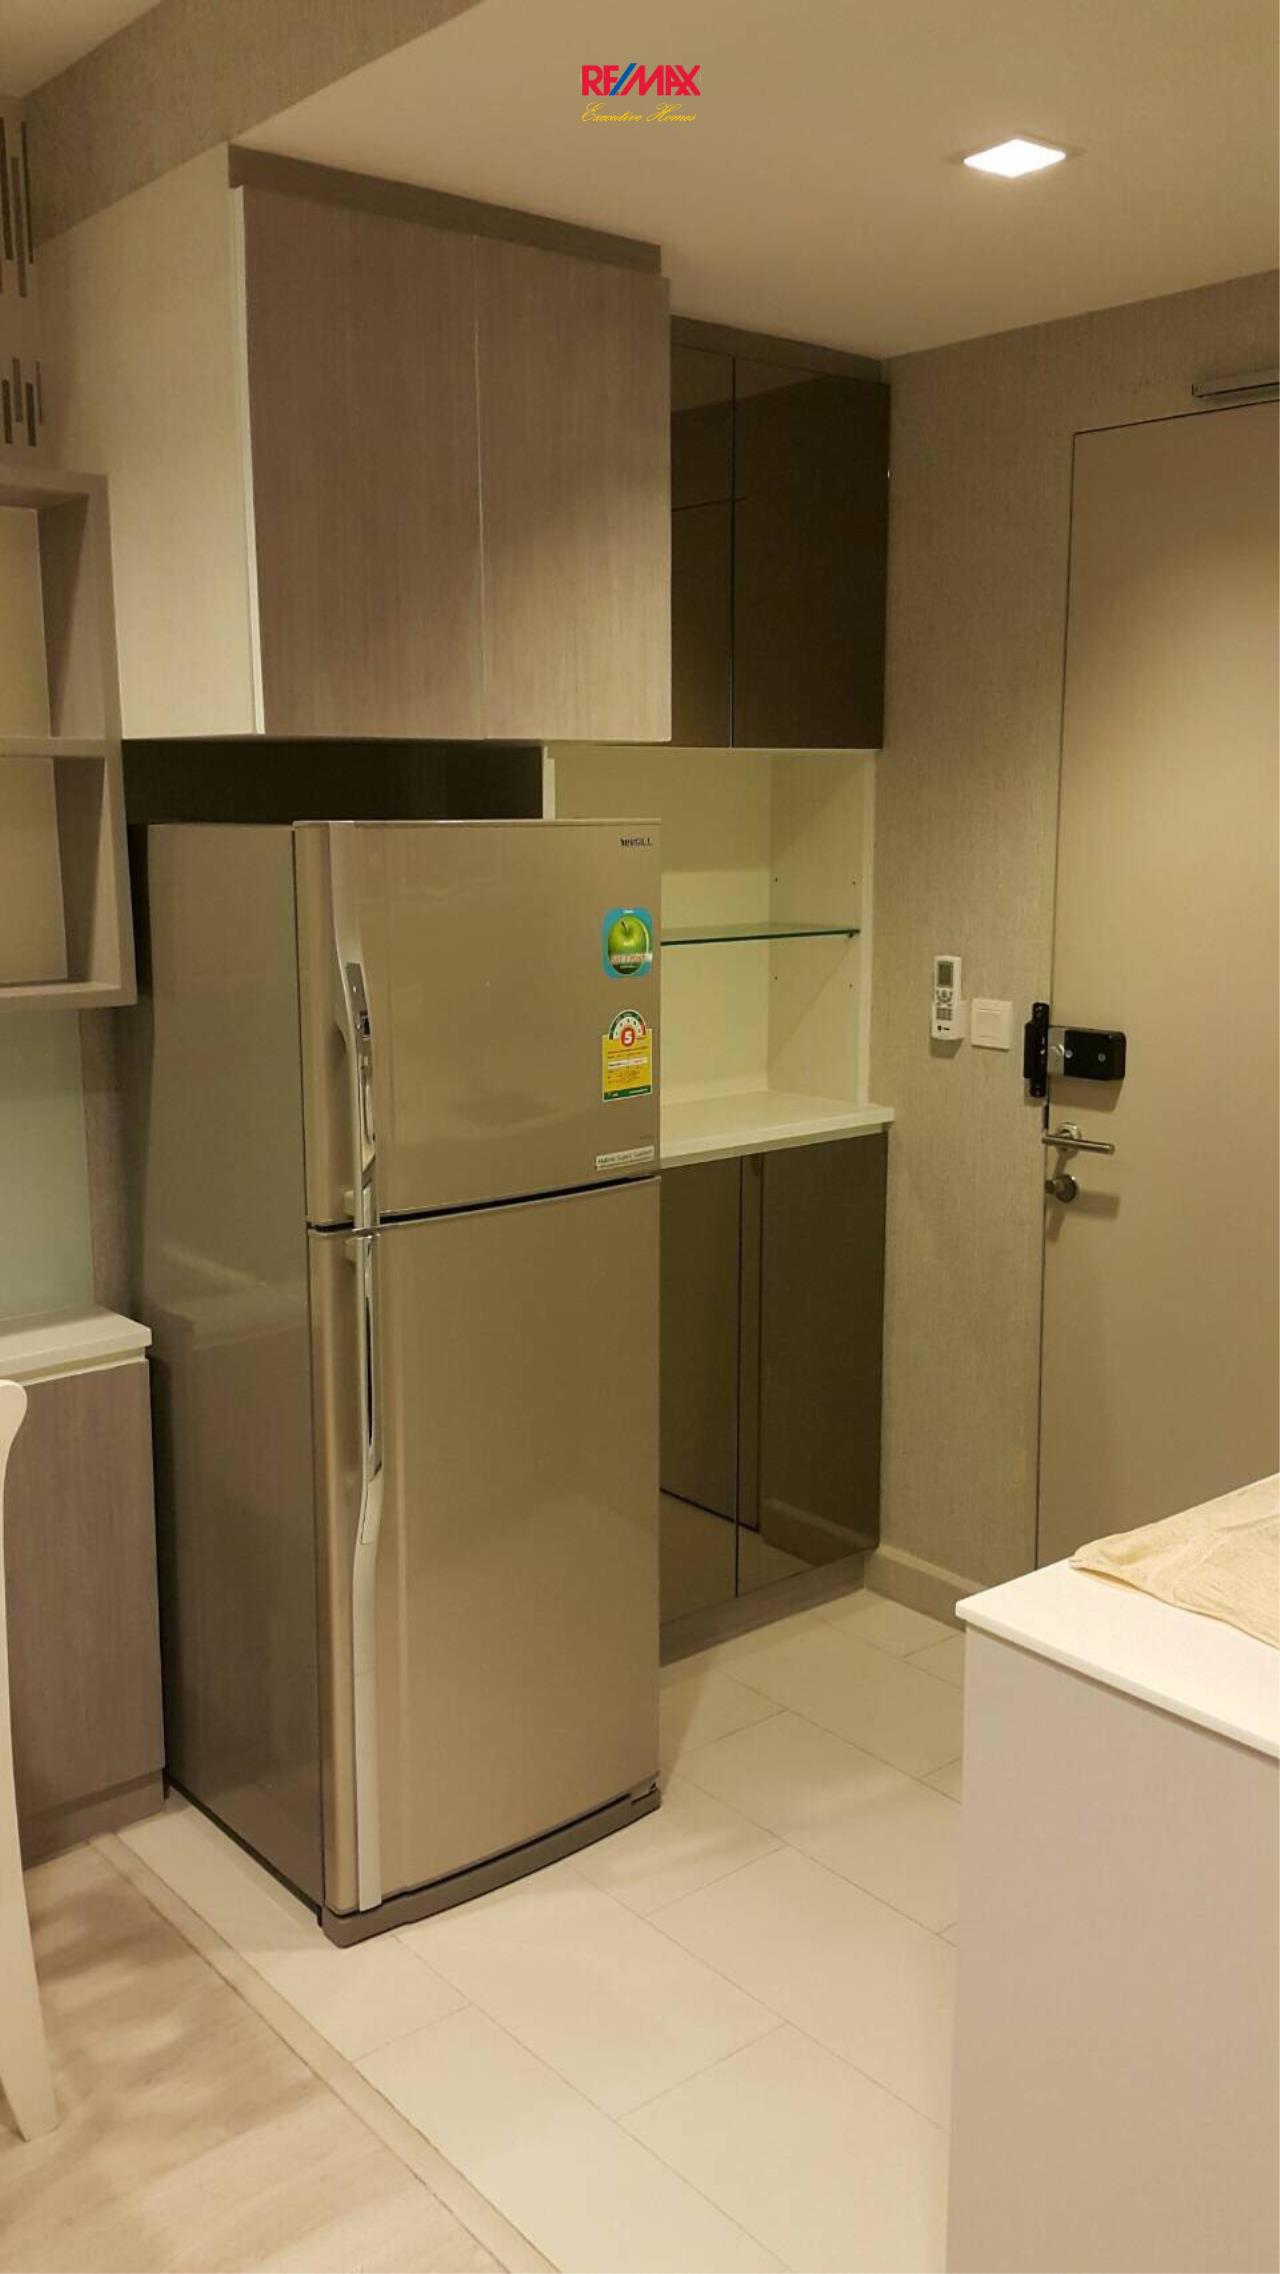 RE/MAX Executive Homes Agency's Nice 1 Bedroom for Rent Ideo Mobi Sathorn 9